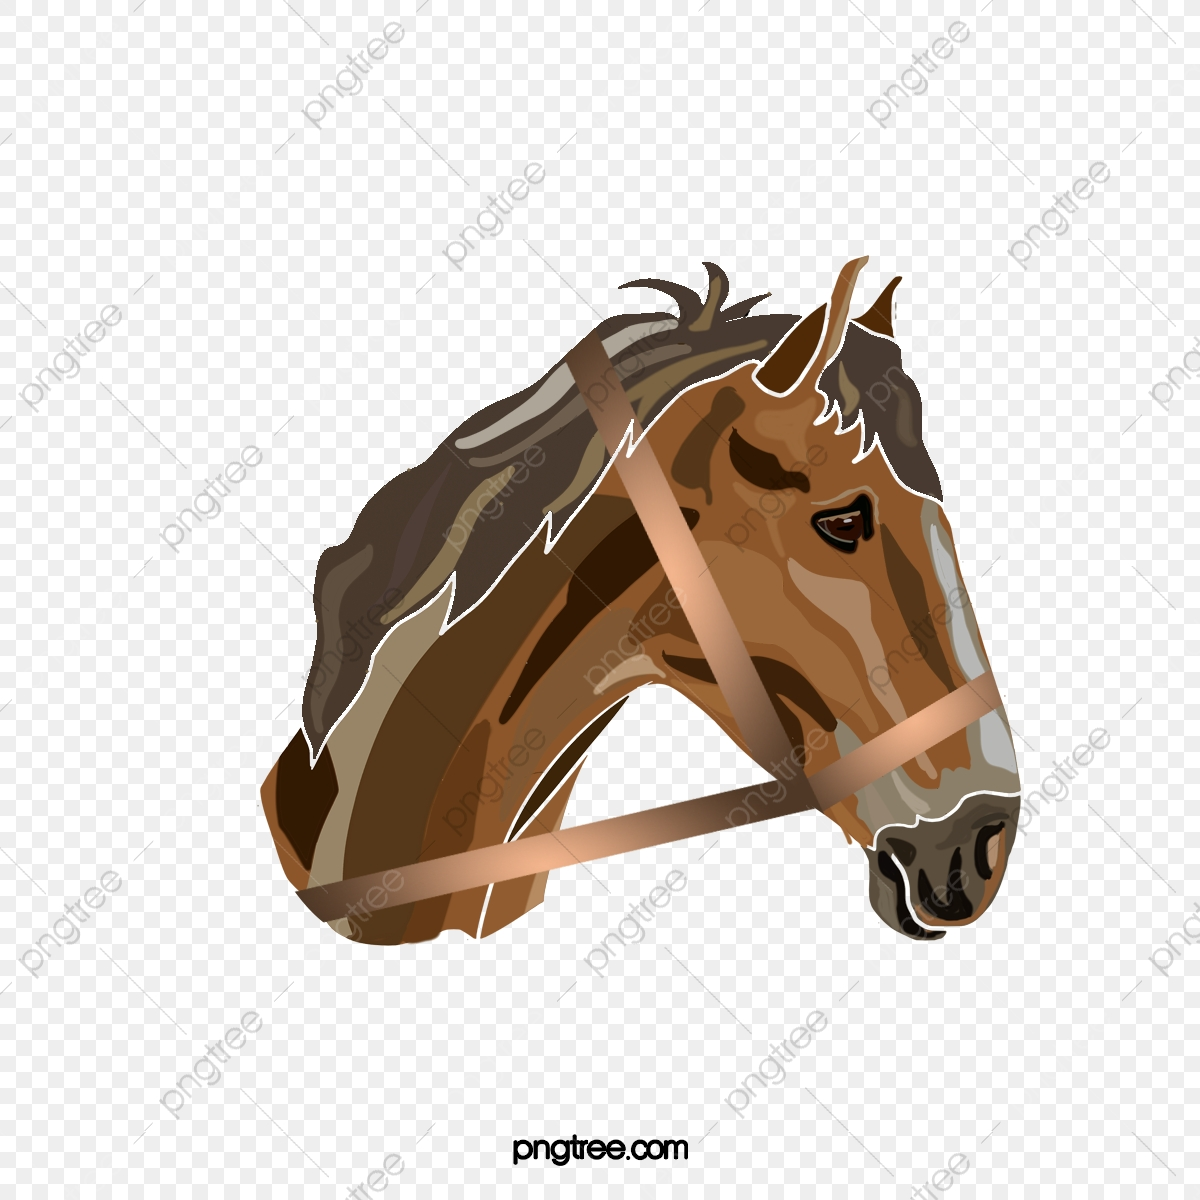 Cartoon Hand Drawn Delicate Horse Head Illustration Horse Clipart Horse Head Animal Png Transparent Clipart Image And Psd File For Free Download